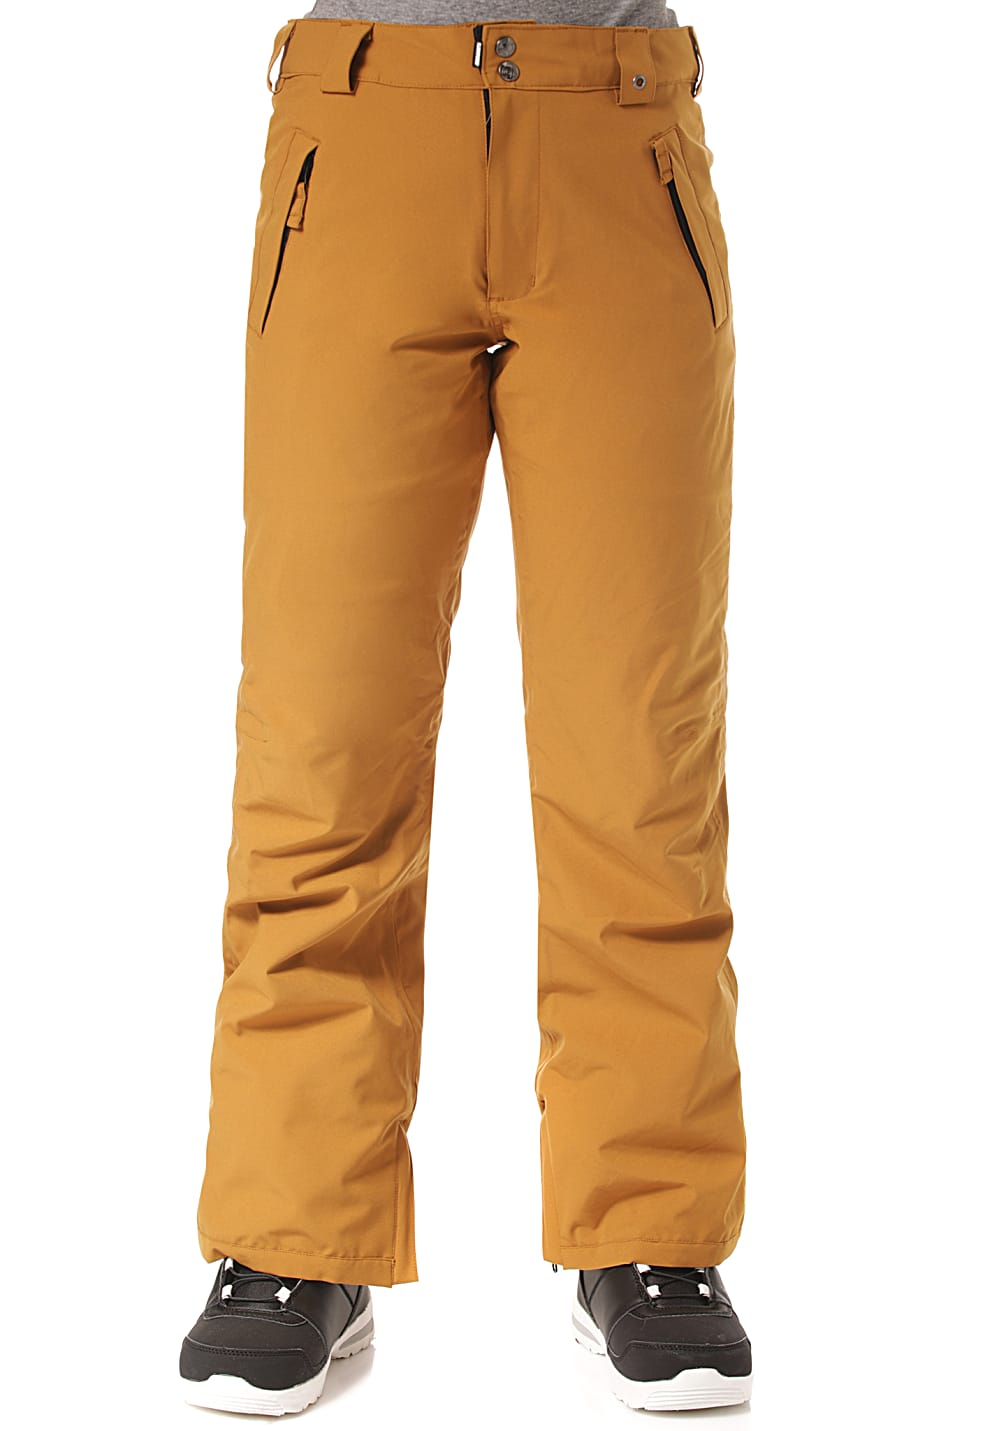 Hosen - Light Yoko Snowboardhose für Damen Beige  - Onlineshop Planet Sports